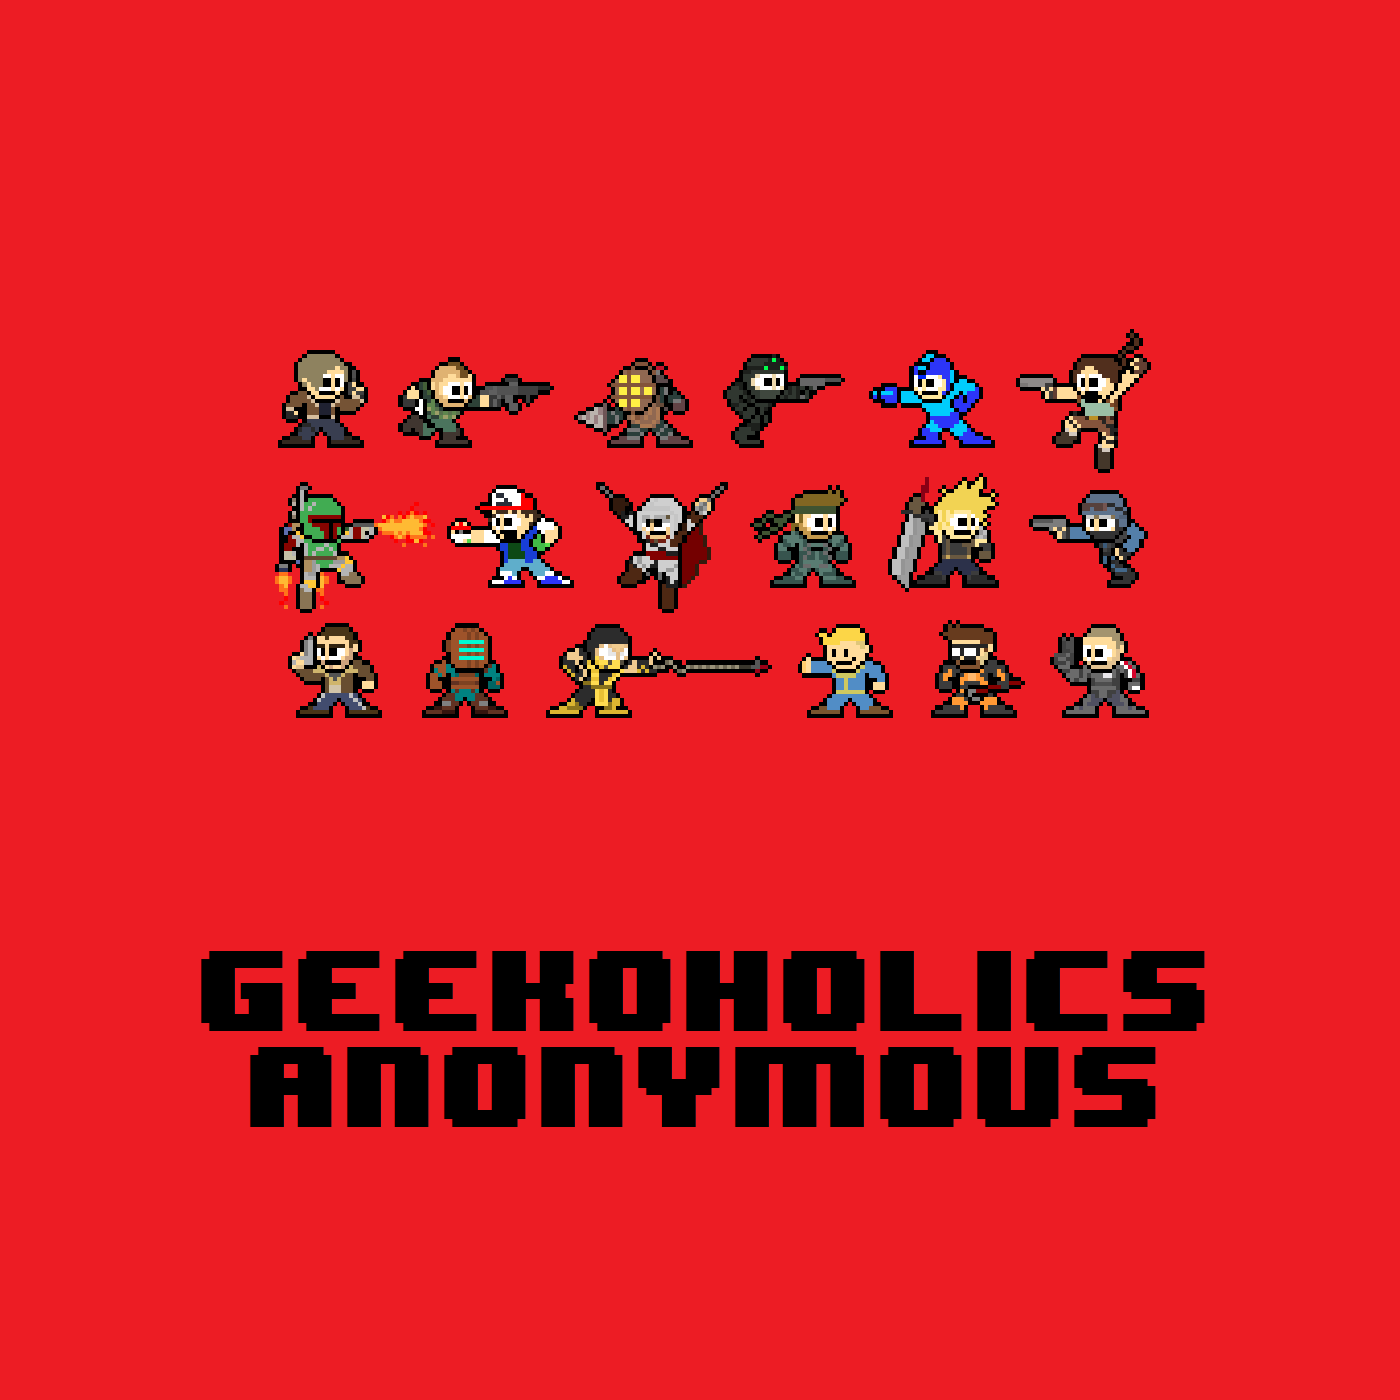 Cyberpunk 2077 controversy and The Game Awards - Geekoholics Anonymous Podcast 285 show art